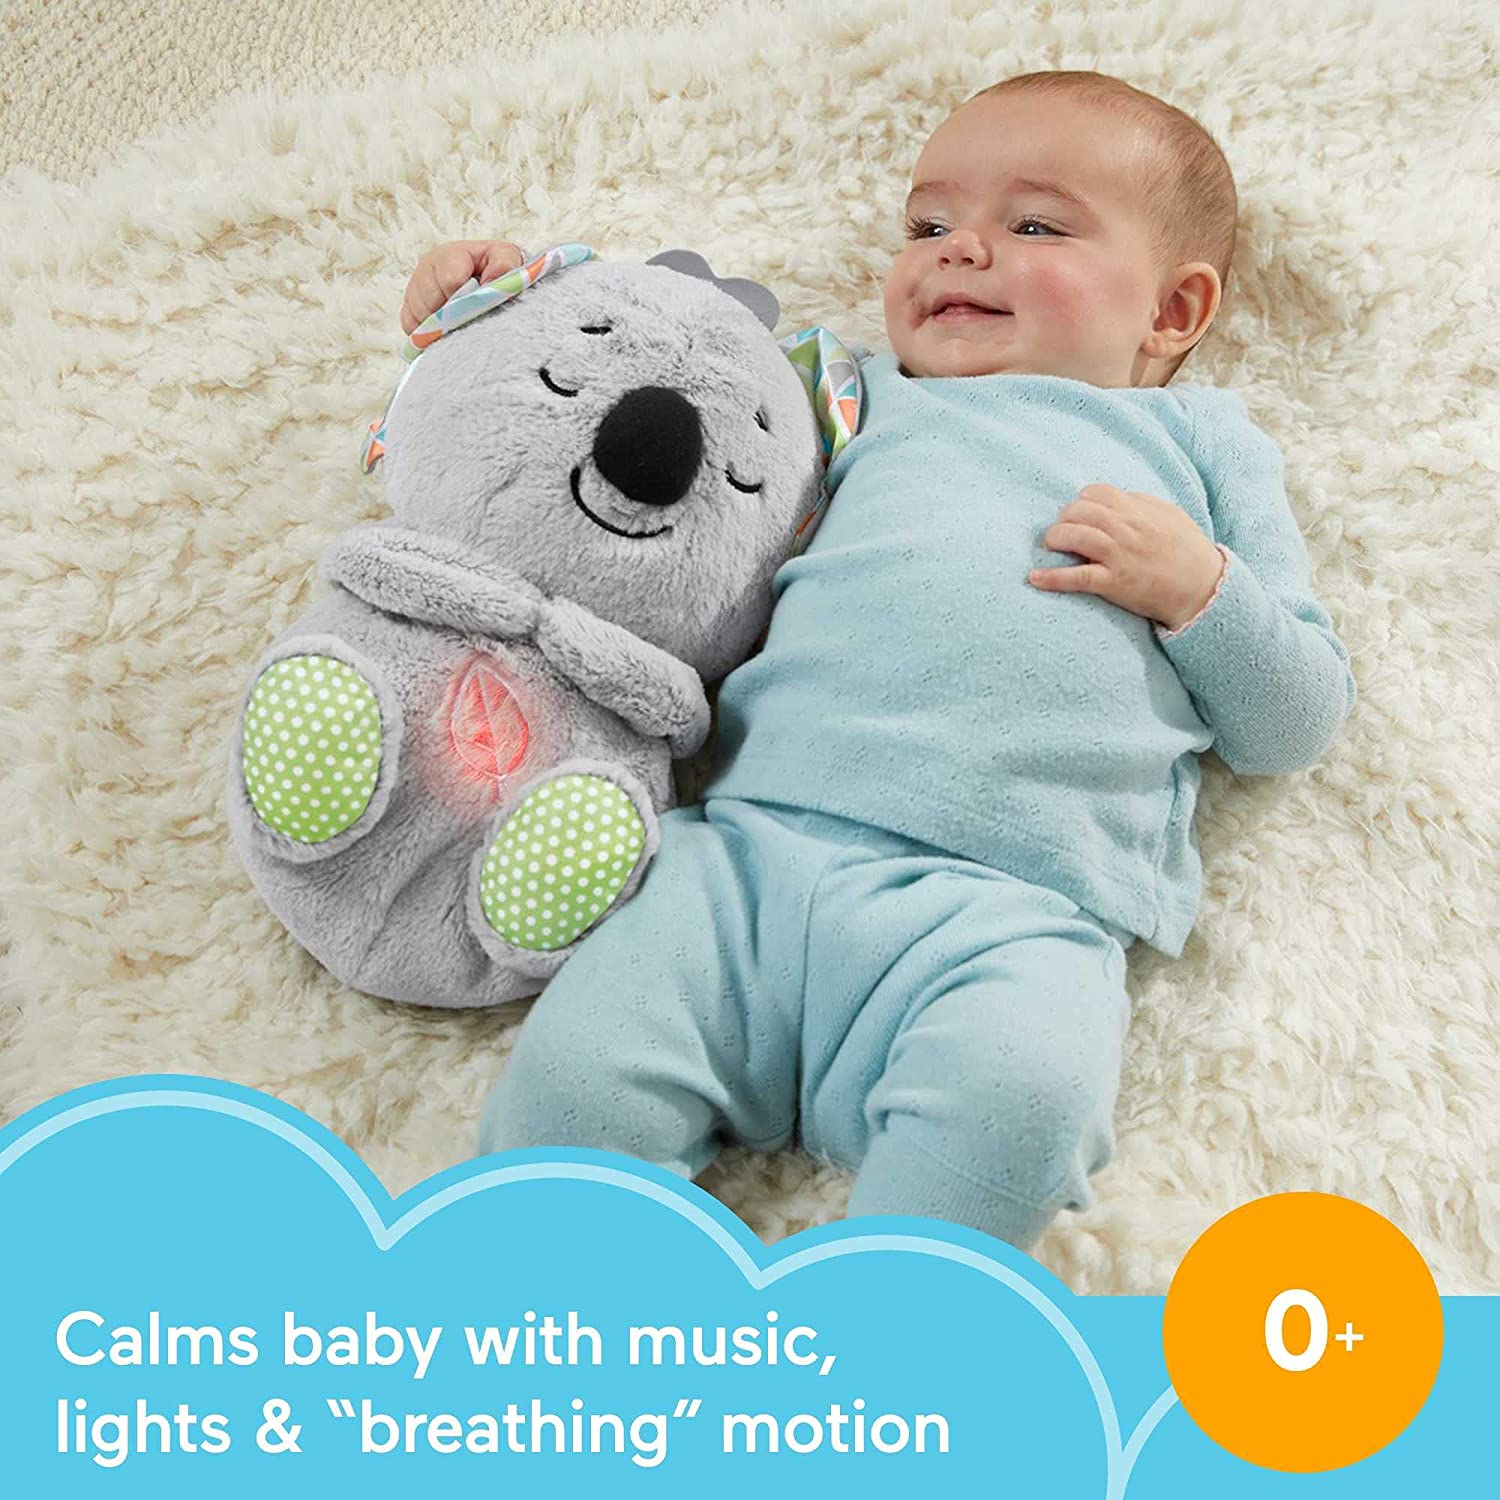 Fisher-Price Soothe 'n Snuggle Koala - Calms baby with music, Lights, and breathing motion